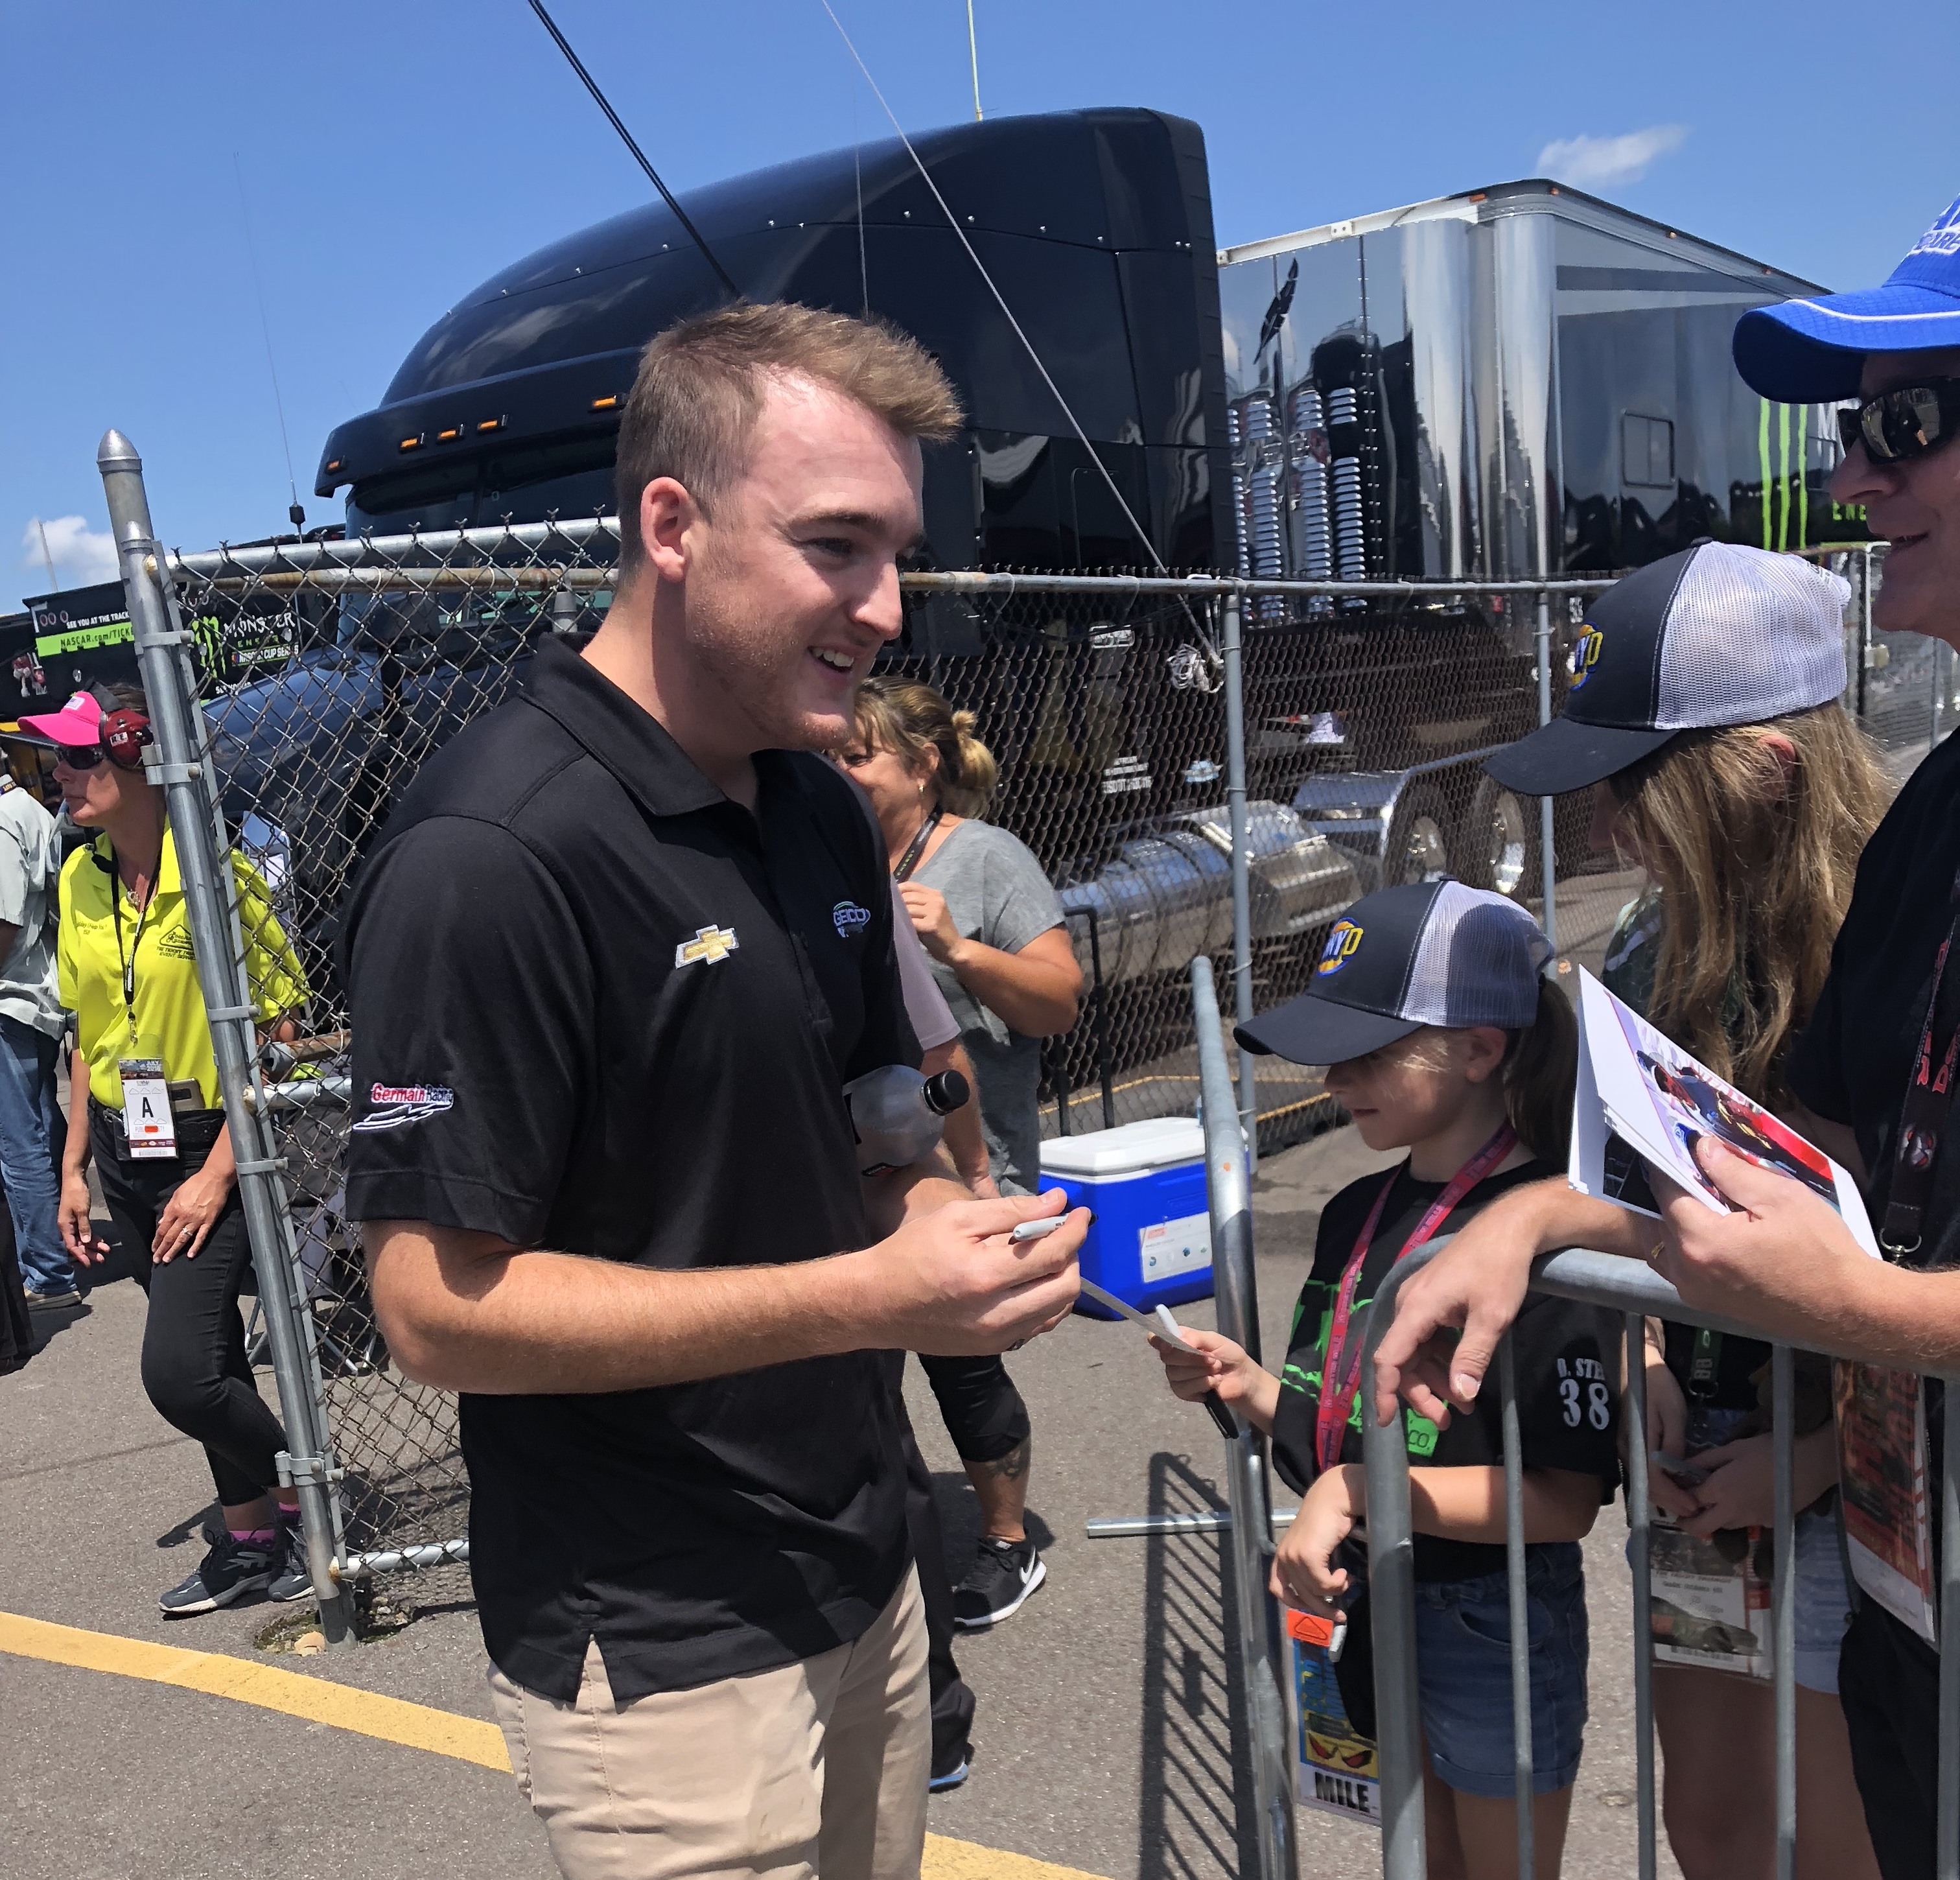 The 26-year old son of father (?) and mother(?) Ty Dillon in 2018 photo. Ty Dillon earned a  million dollar salary - leaving the net worth at 4 million in 2018